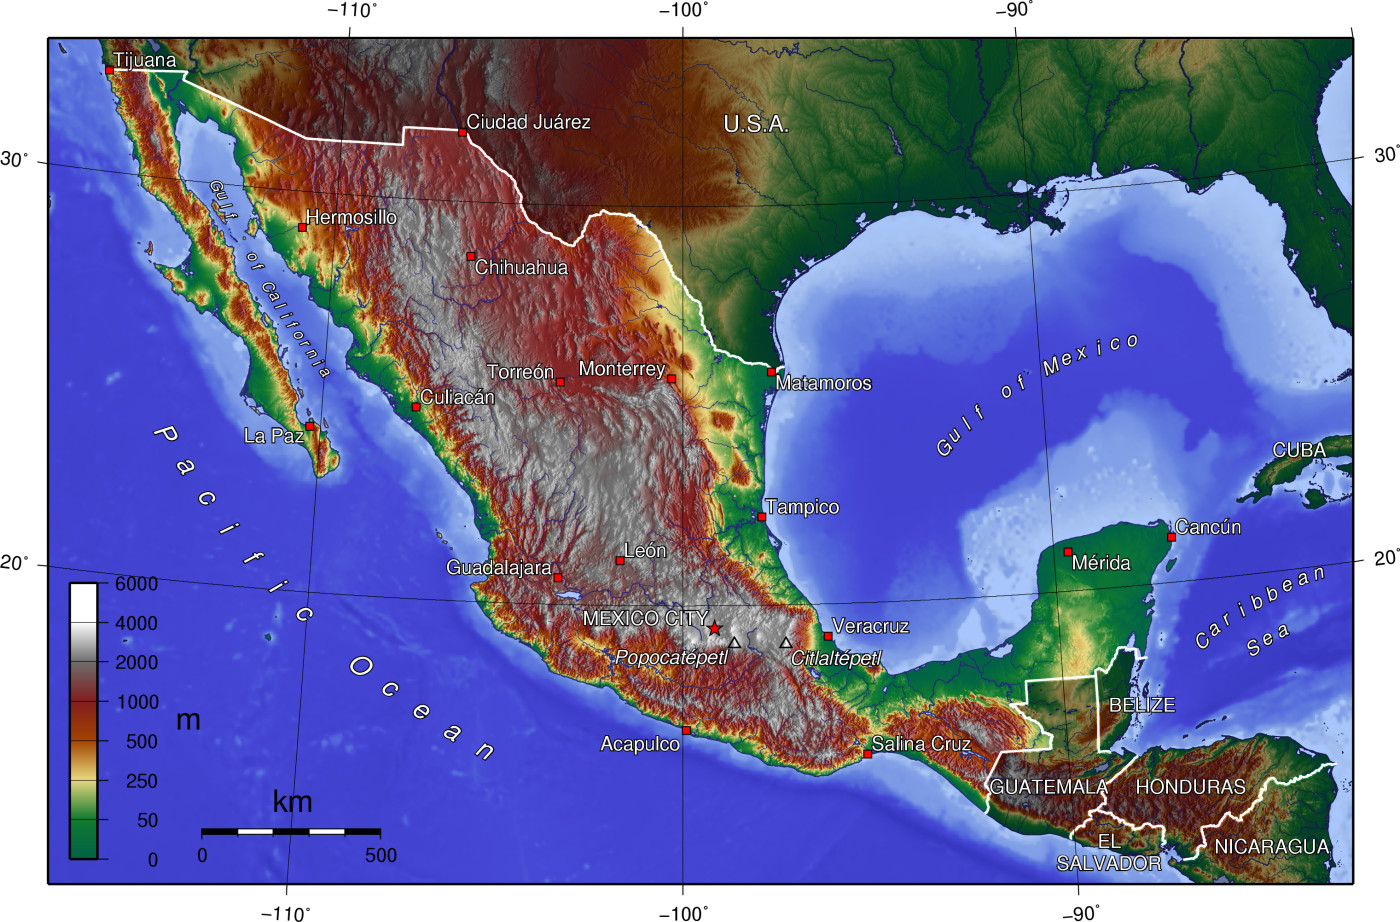 relief map of mexico with altitude meter scale and cities